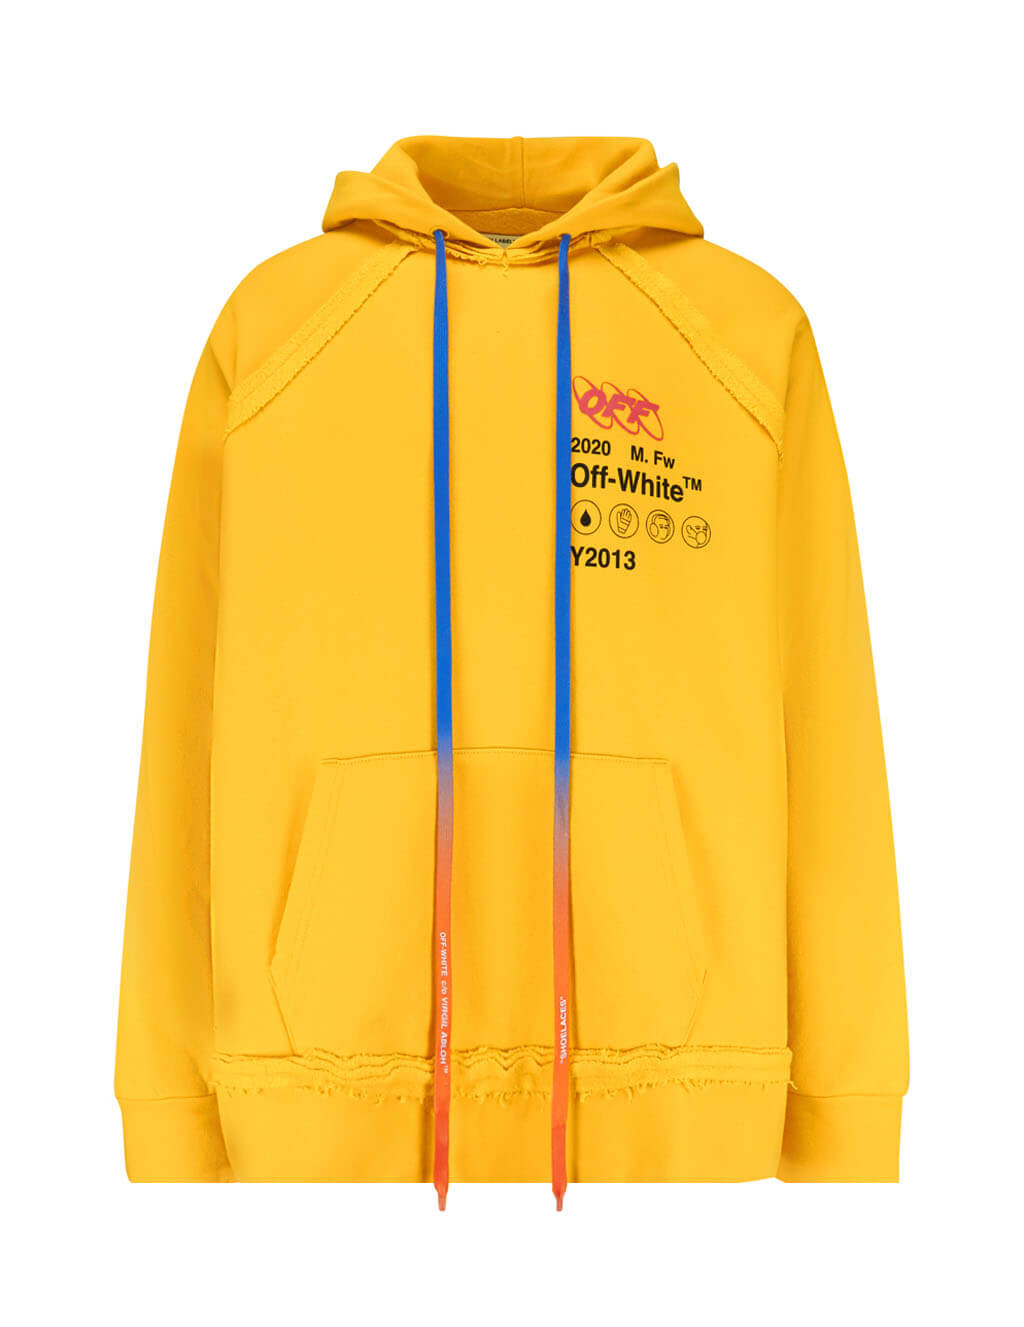 Off-White Men's Giulio Fashion Yellow Industrial Y2013 Hoodie OMBB057F19E300166010